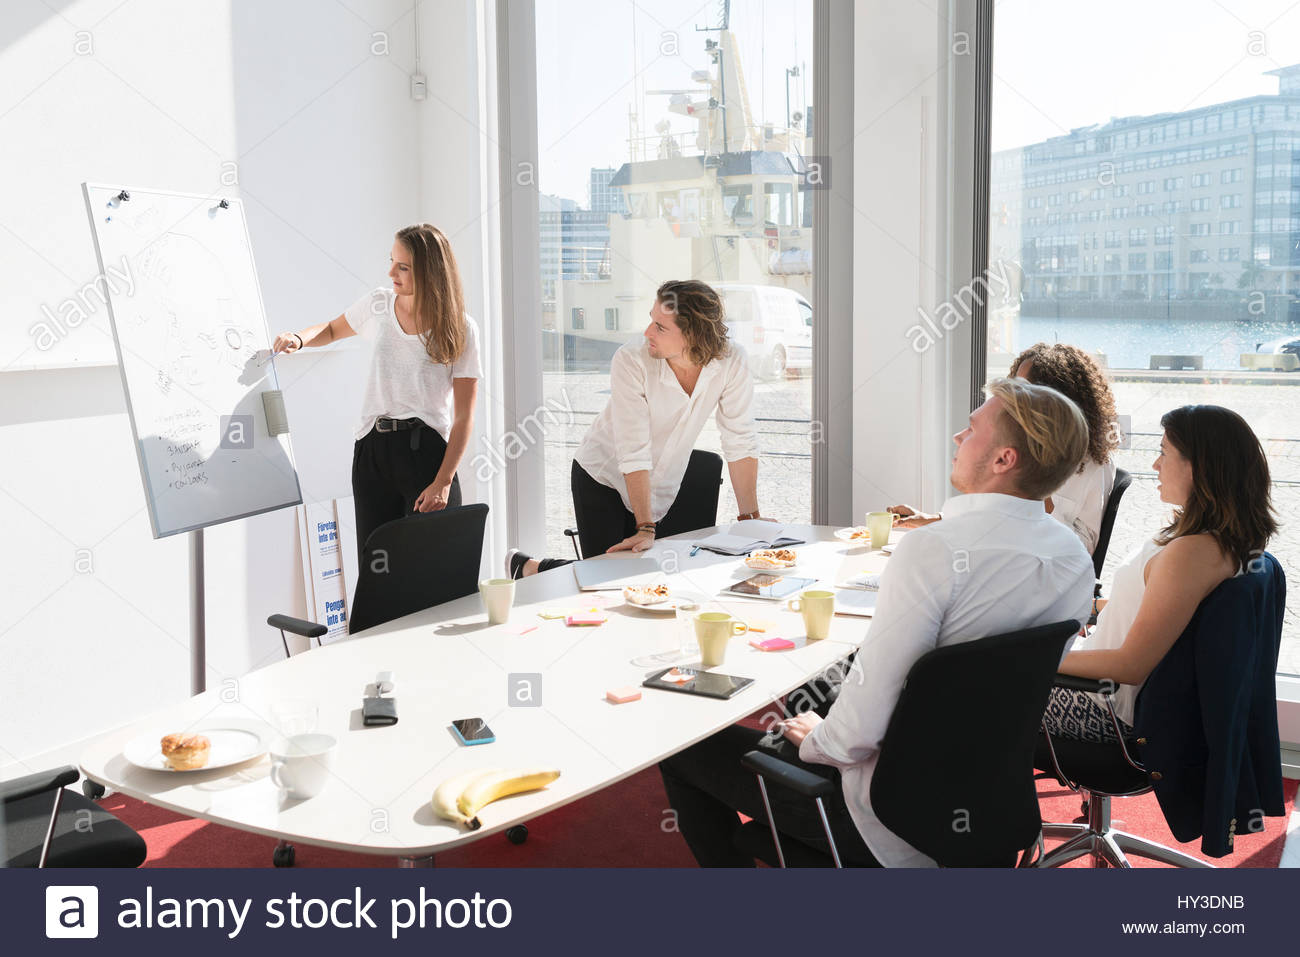 Sweden, Businesswoman giving presentation in office - Stock Image